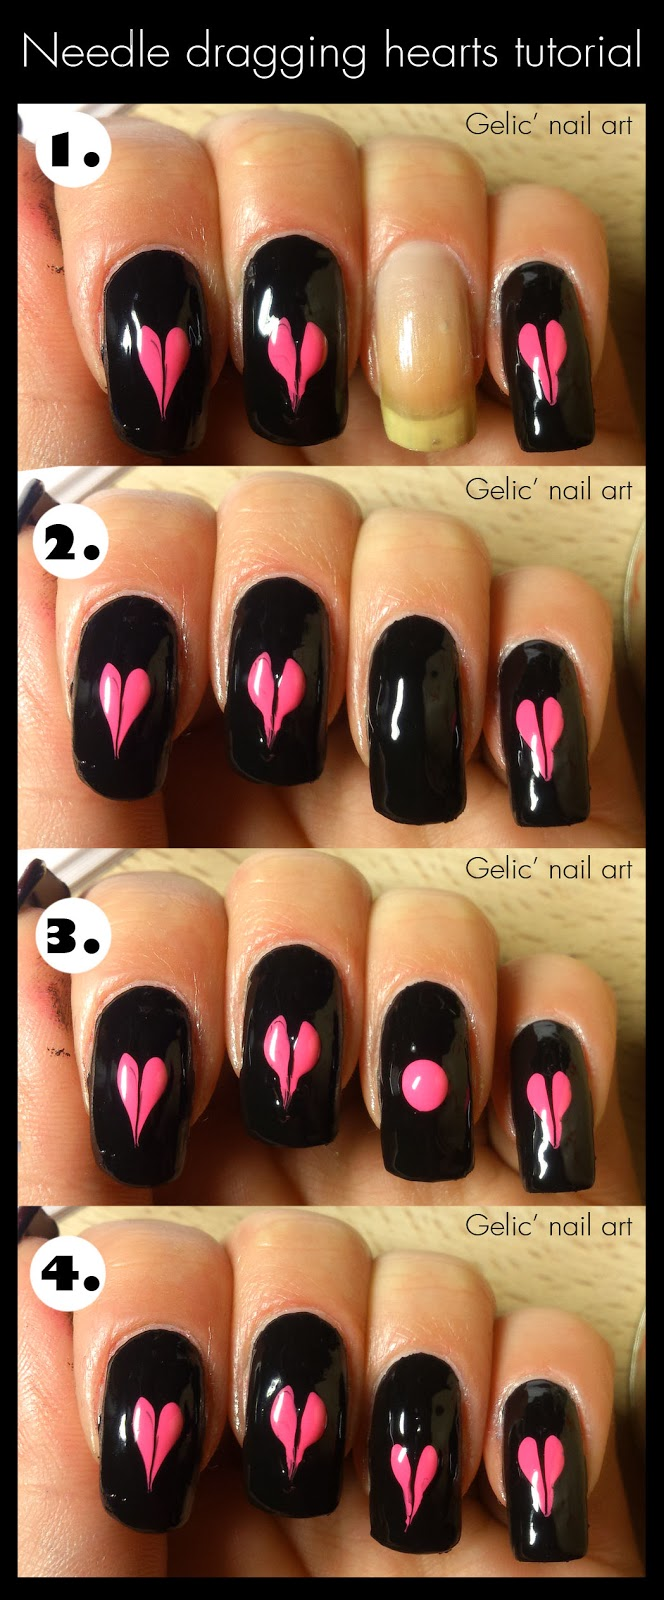 http://gelicnailart.blogspot.se/2014/02/needle-dragging-hearts-tutorial.html